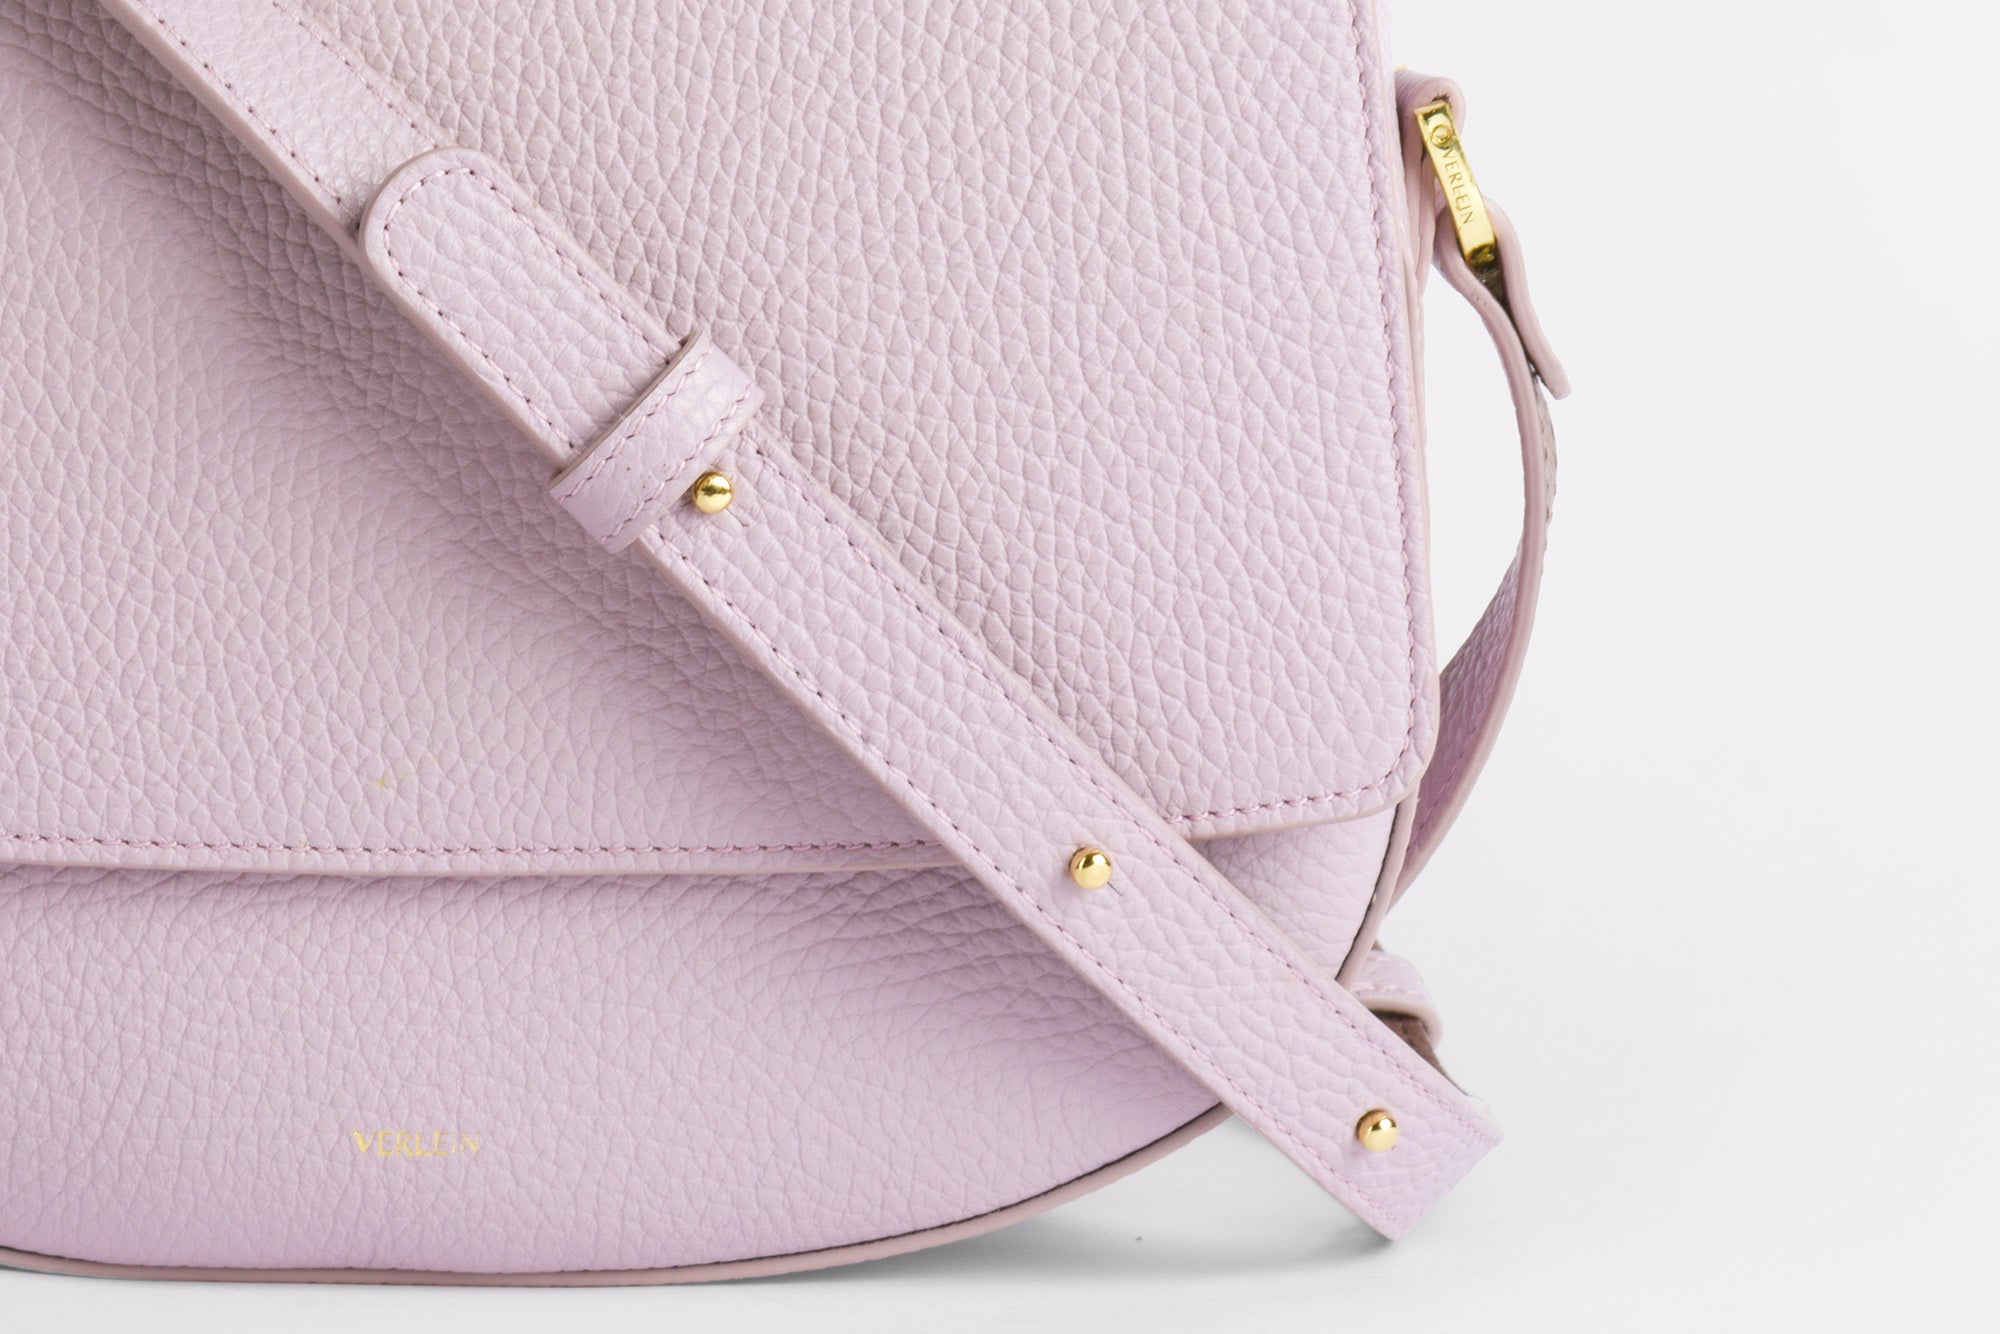 Close up of the strap from a Lavender Haze Ana Crossbody Bag from Verlein